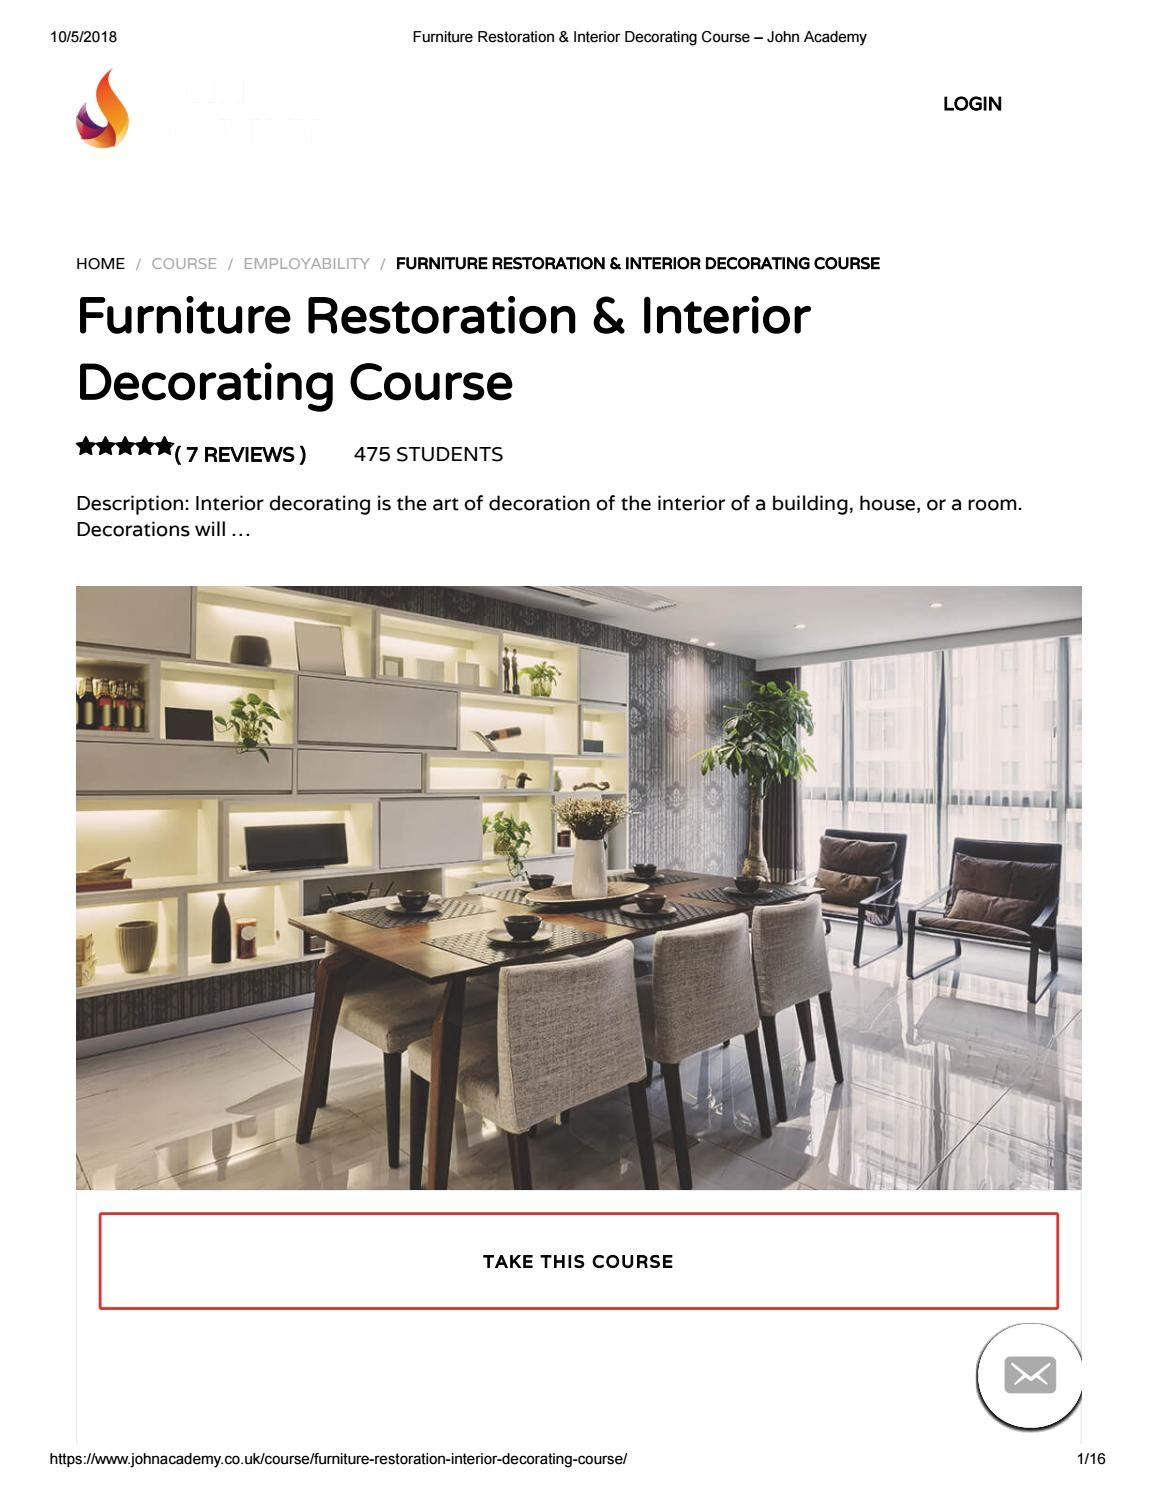 Furniture restoration  interior decorating course john academy event management diploma pinterest and also rh